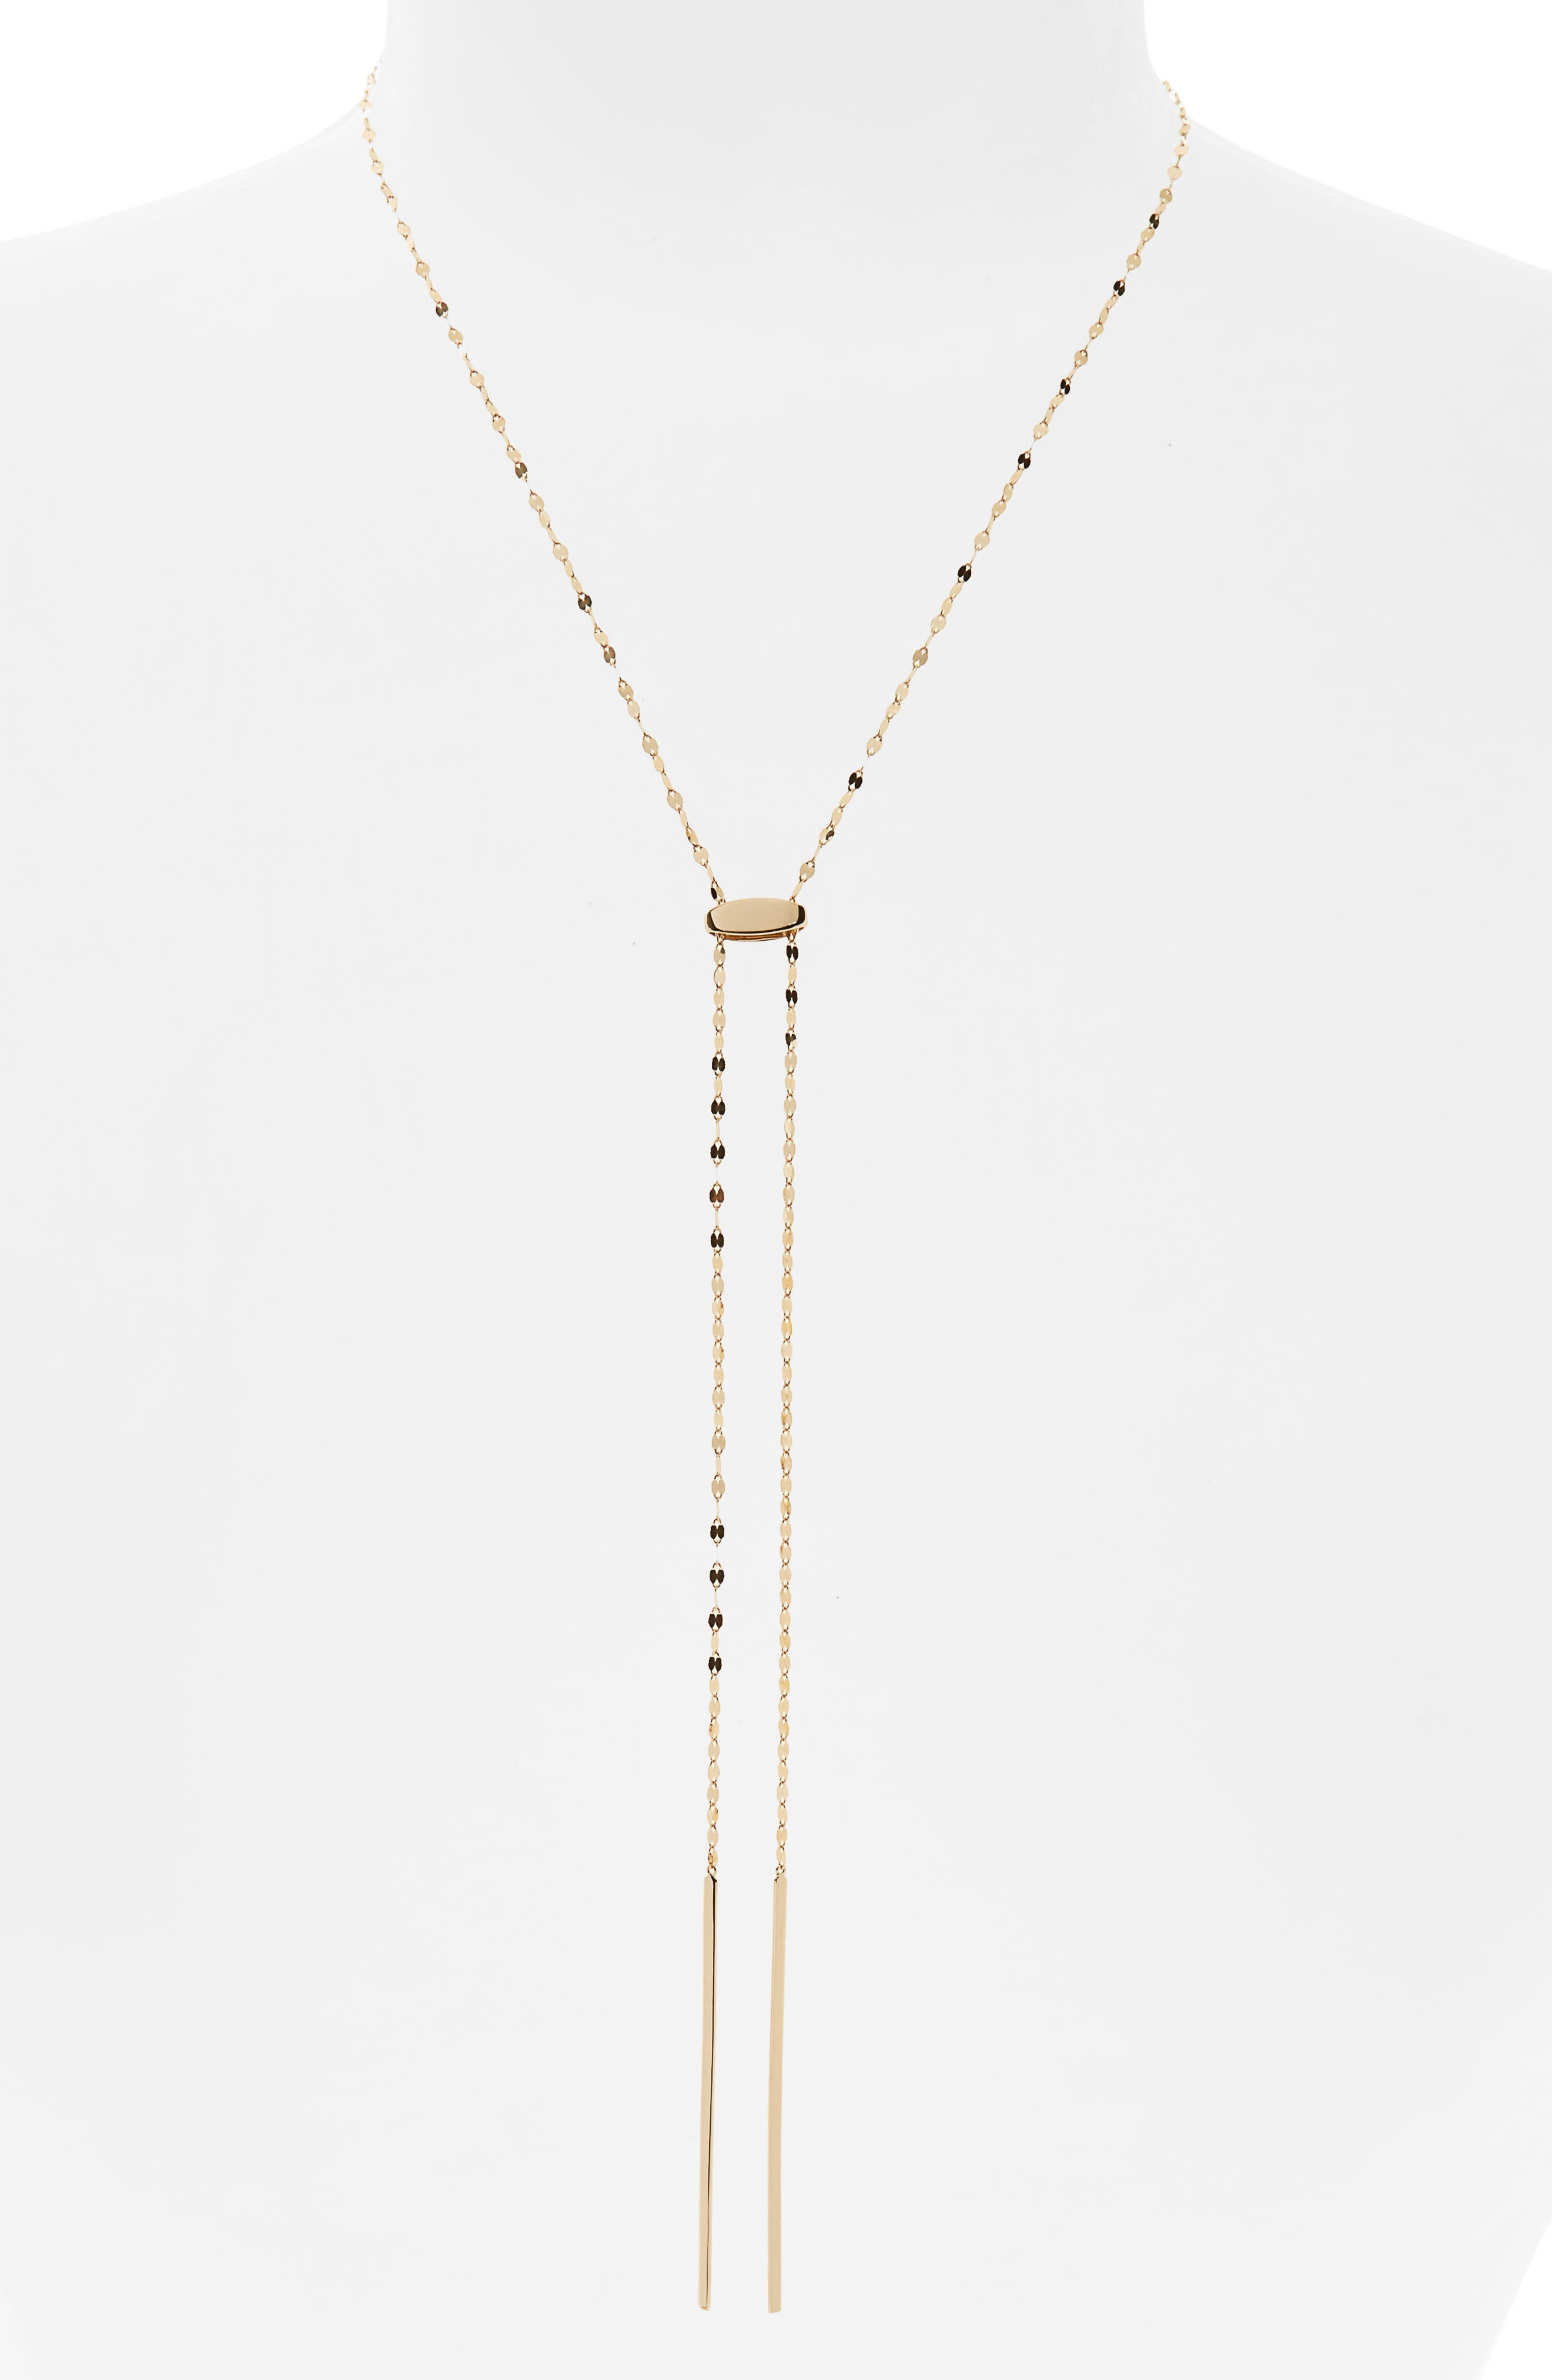 Blake Tie Up Lariat Necklace,                             Alternate thumbnail 2, color,                             710